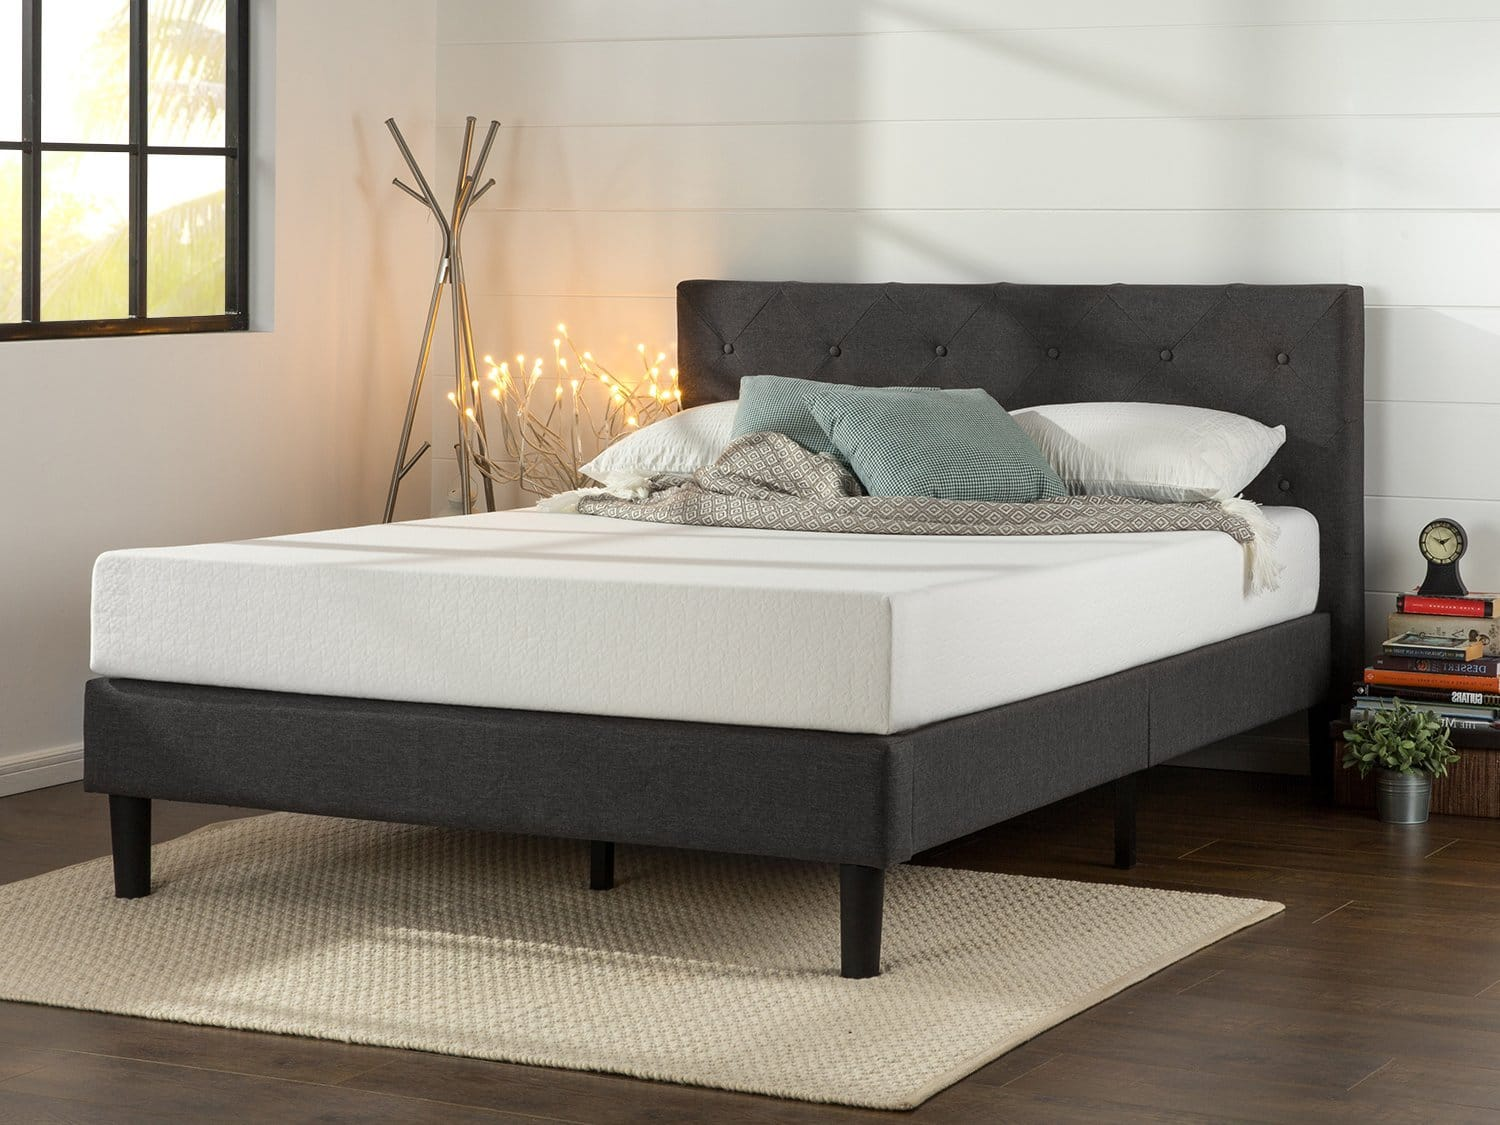 Amazing Zinus Upholstered Diamond Stitched Platform Bed Queen Slickdeals net